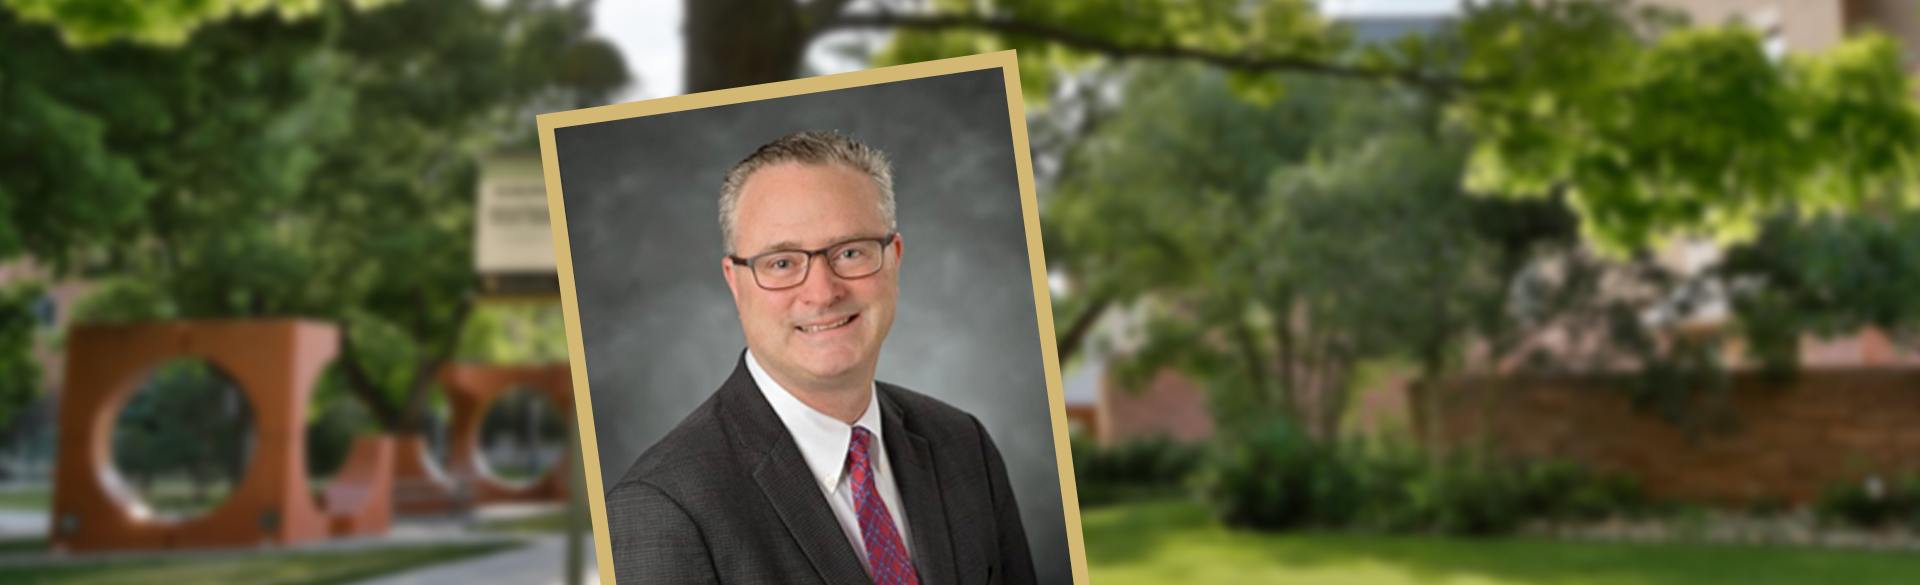 Brian T. Smith Named Senior Associate Dean for Administration and Finance